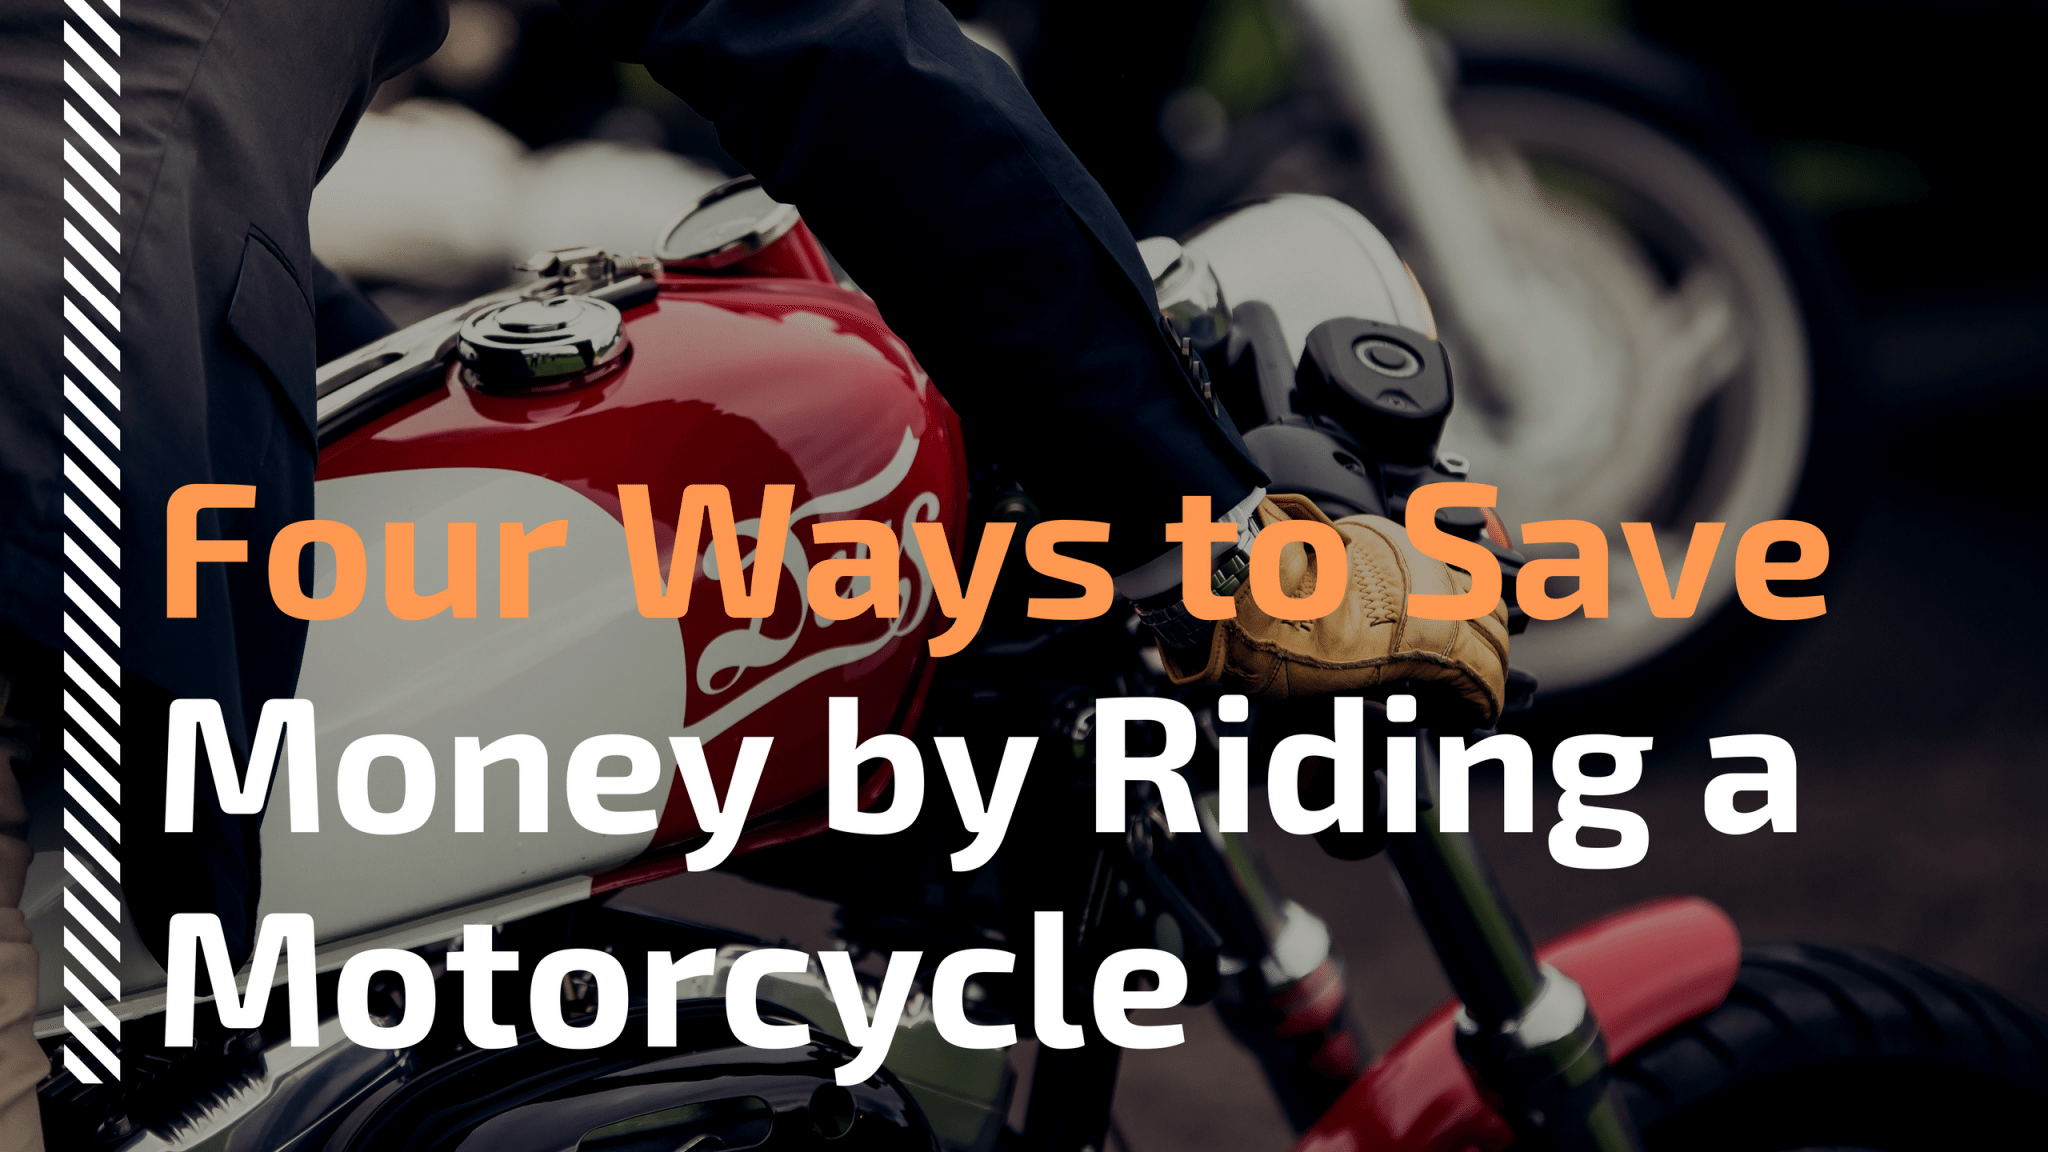 Four Ways to Save Money by Riding a Motorcycle